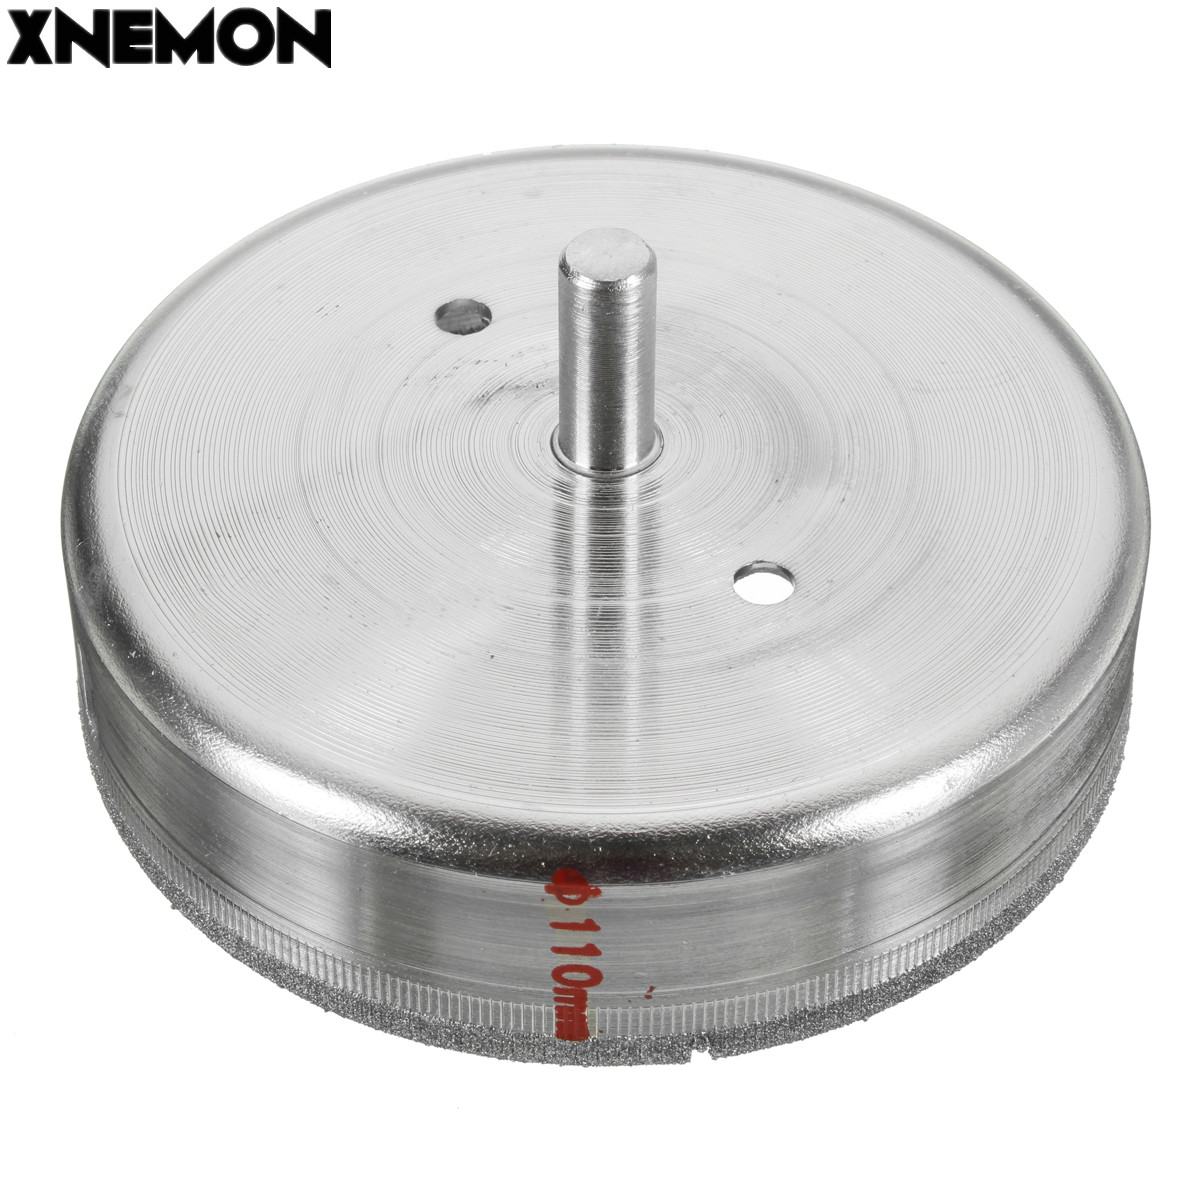 XNEMON 1PC 110mm 4 3/8'' Inch Diamond Coated Drill Bit Hole Saw Core Drills Marble Tile Suitable For Use In Drill Hole On Glass